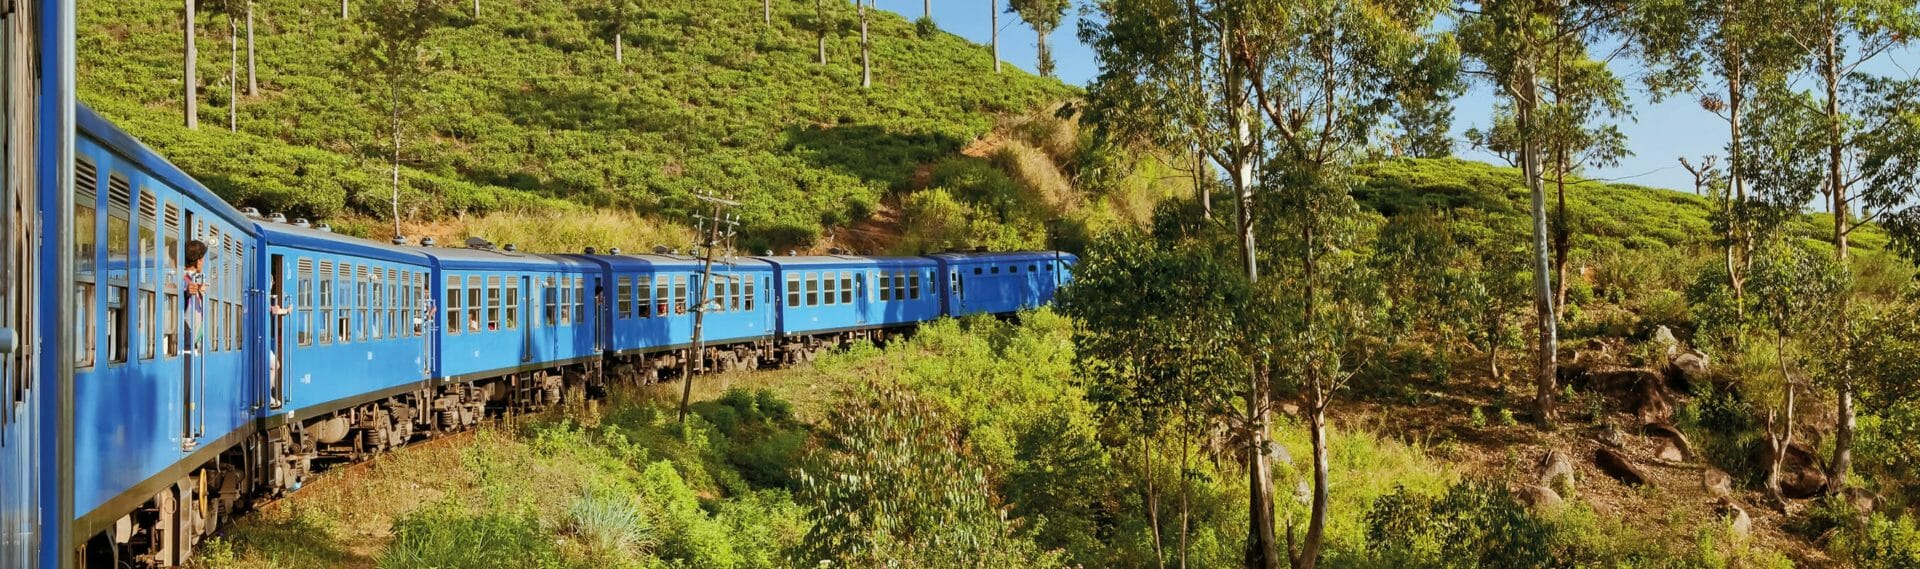 Travel by train through scenic mountain landscape